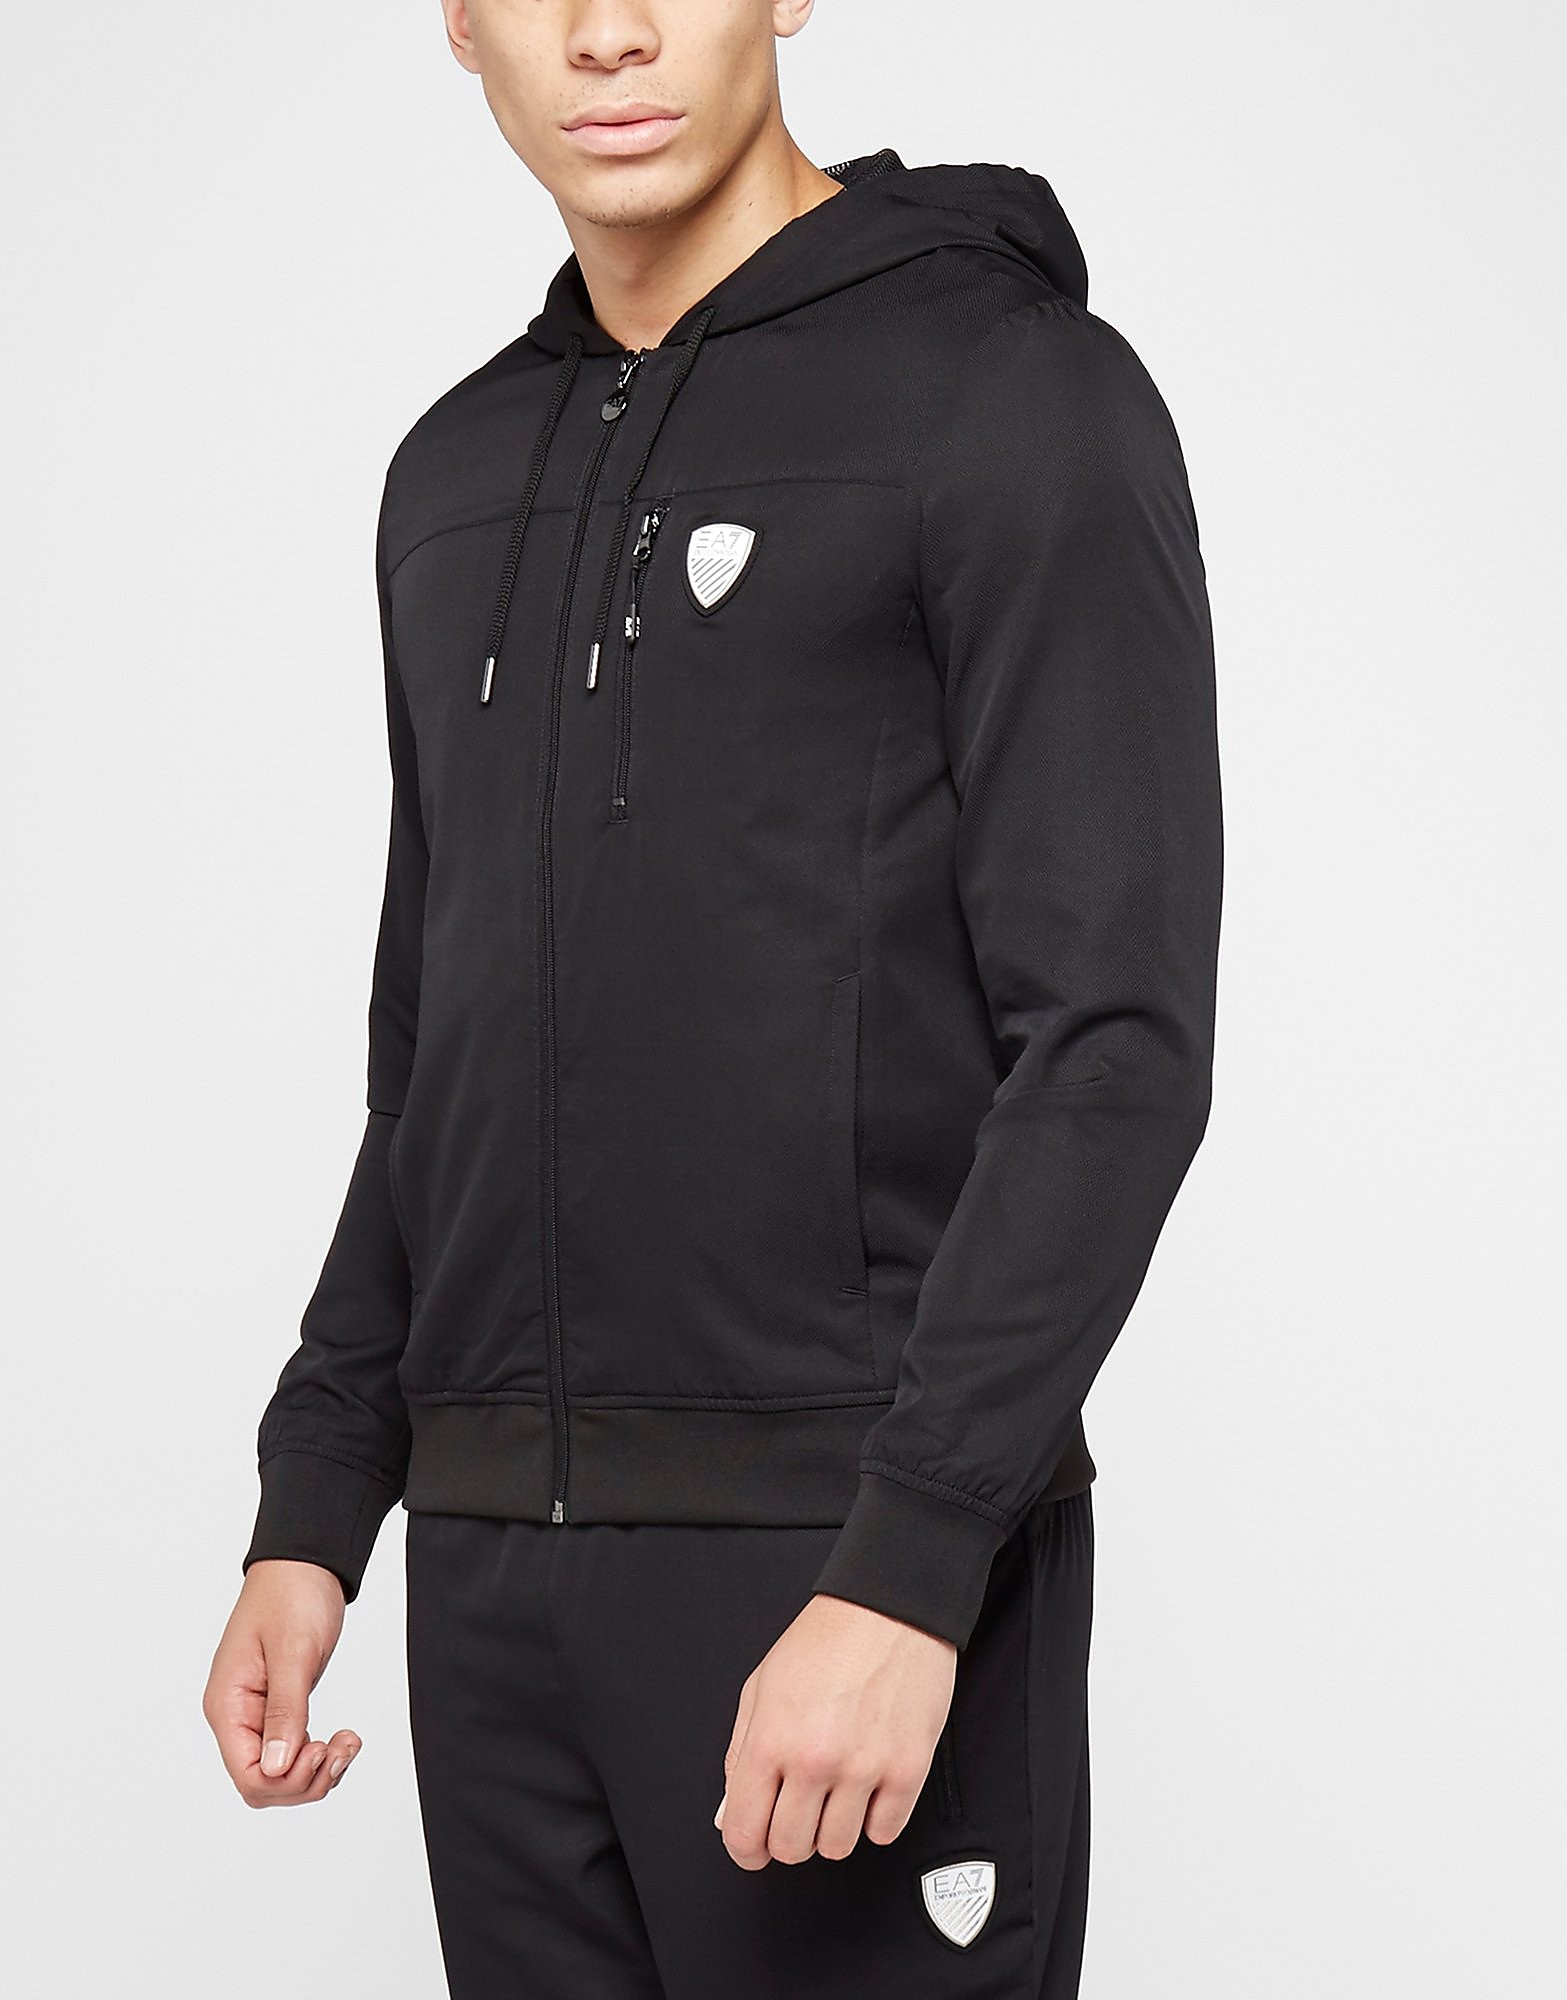 Emporio Armani EA7 Woven Hooded Tracksuit - Exclusive